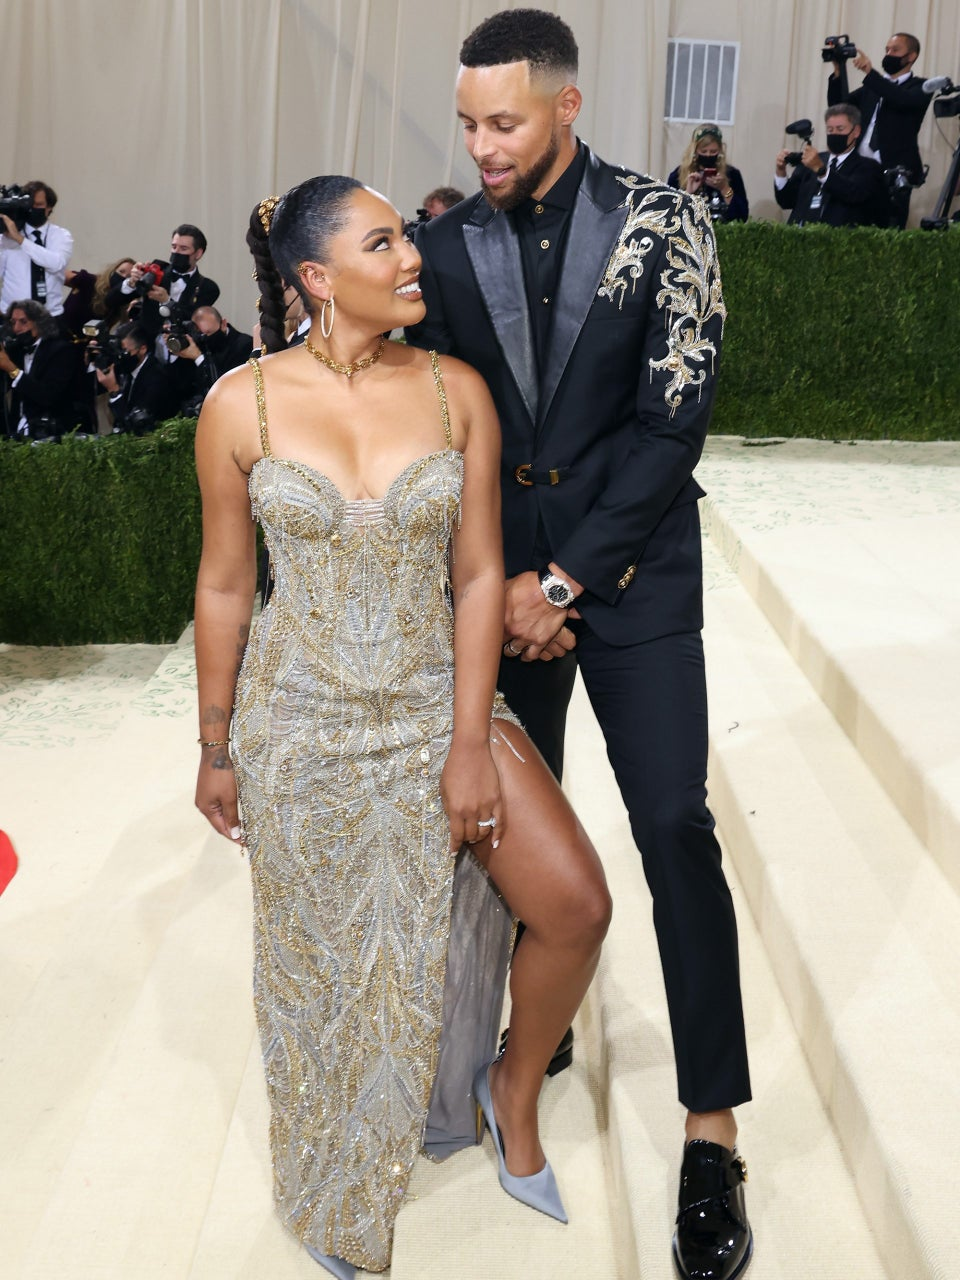 Date Night: Love And Fashion Were On Display At The 2021 Met Gala